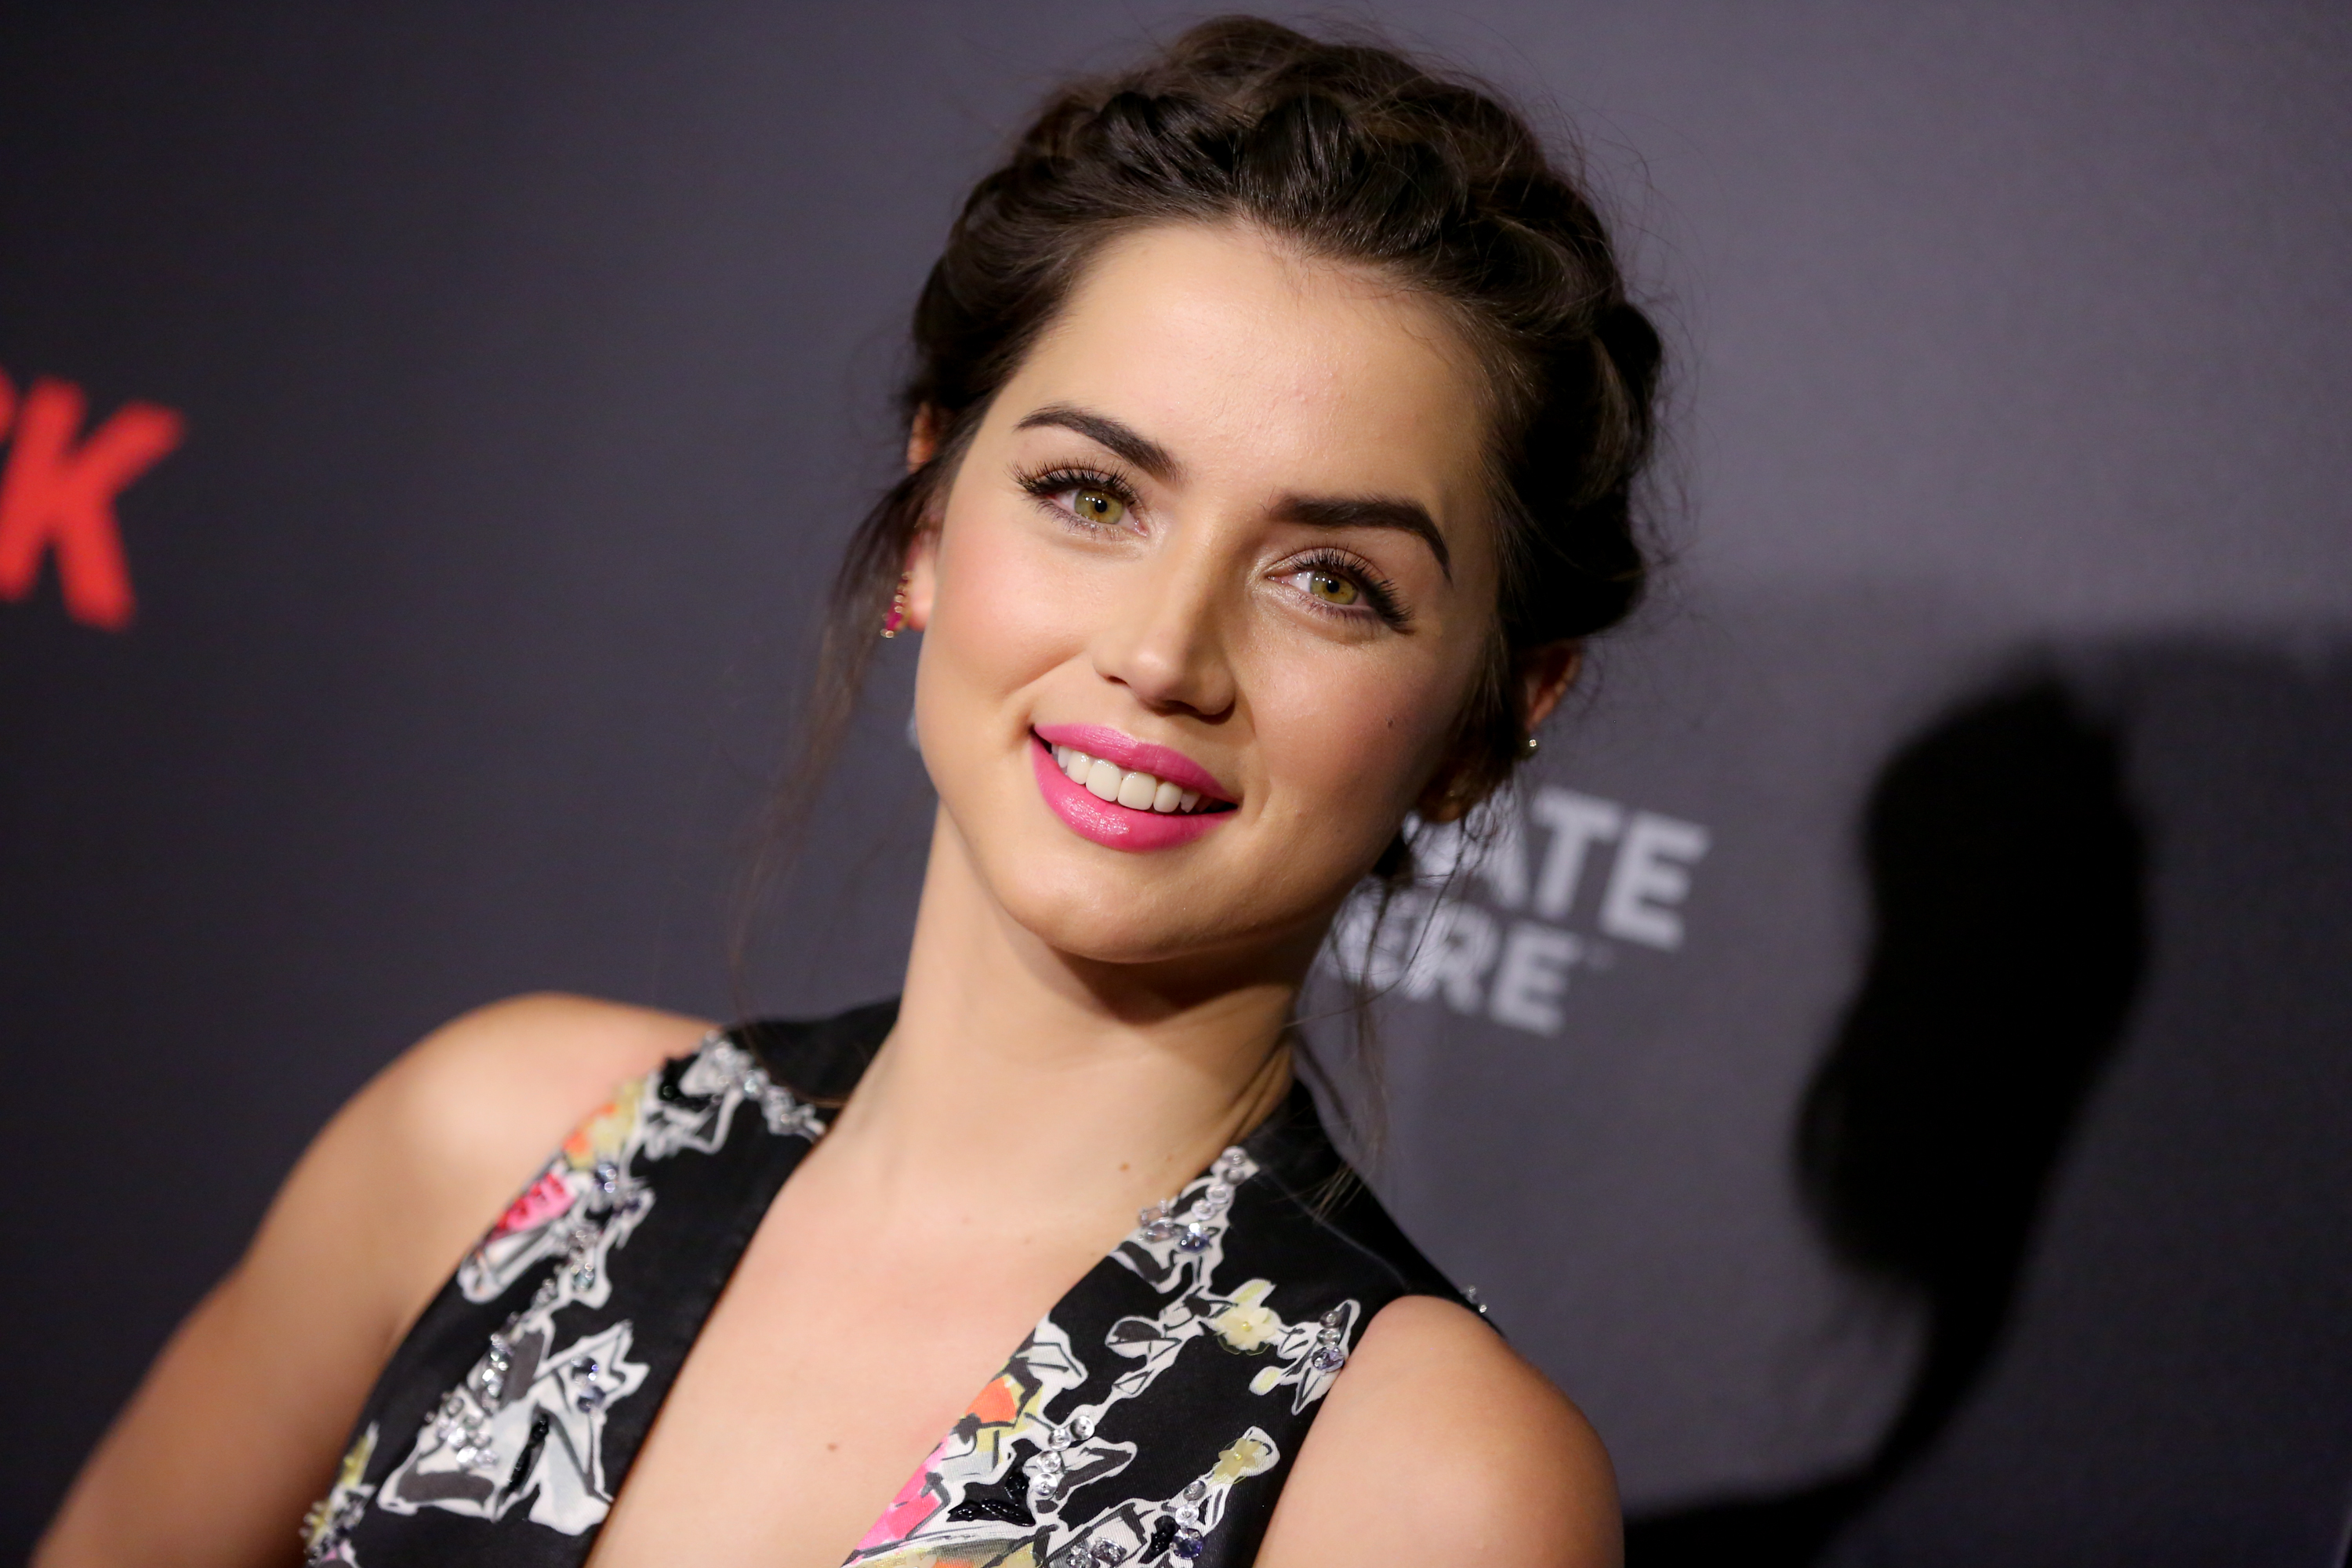 Ana De Armas HD Wallpapers Free Download in High Quality ... Gi Jane Cast